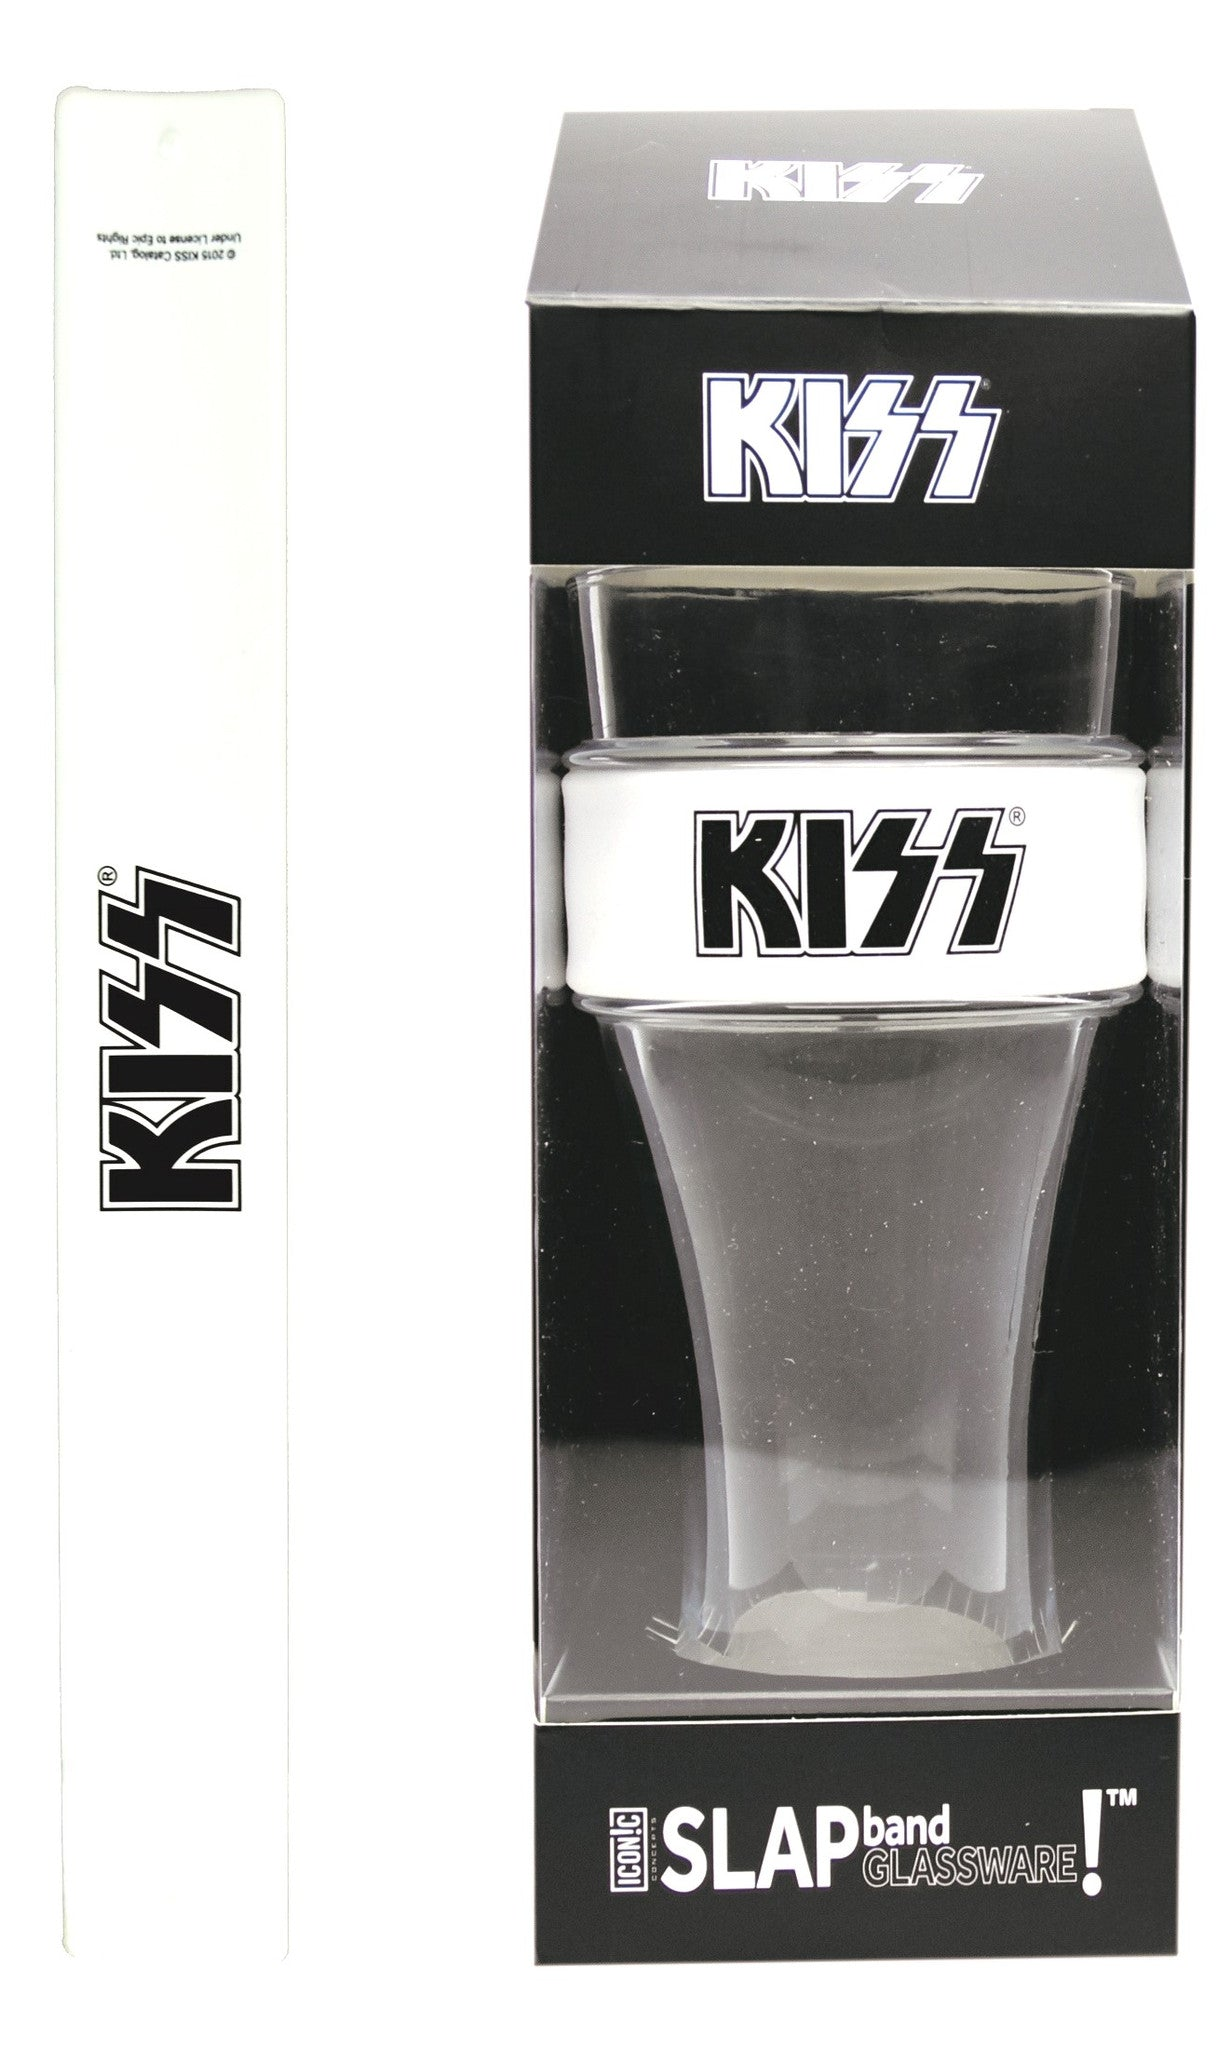 KISS Slap Band Glassware - Single Pack with Slap Band KISS White Band/Black Logo